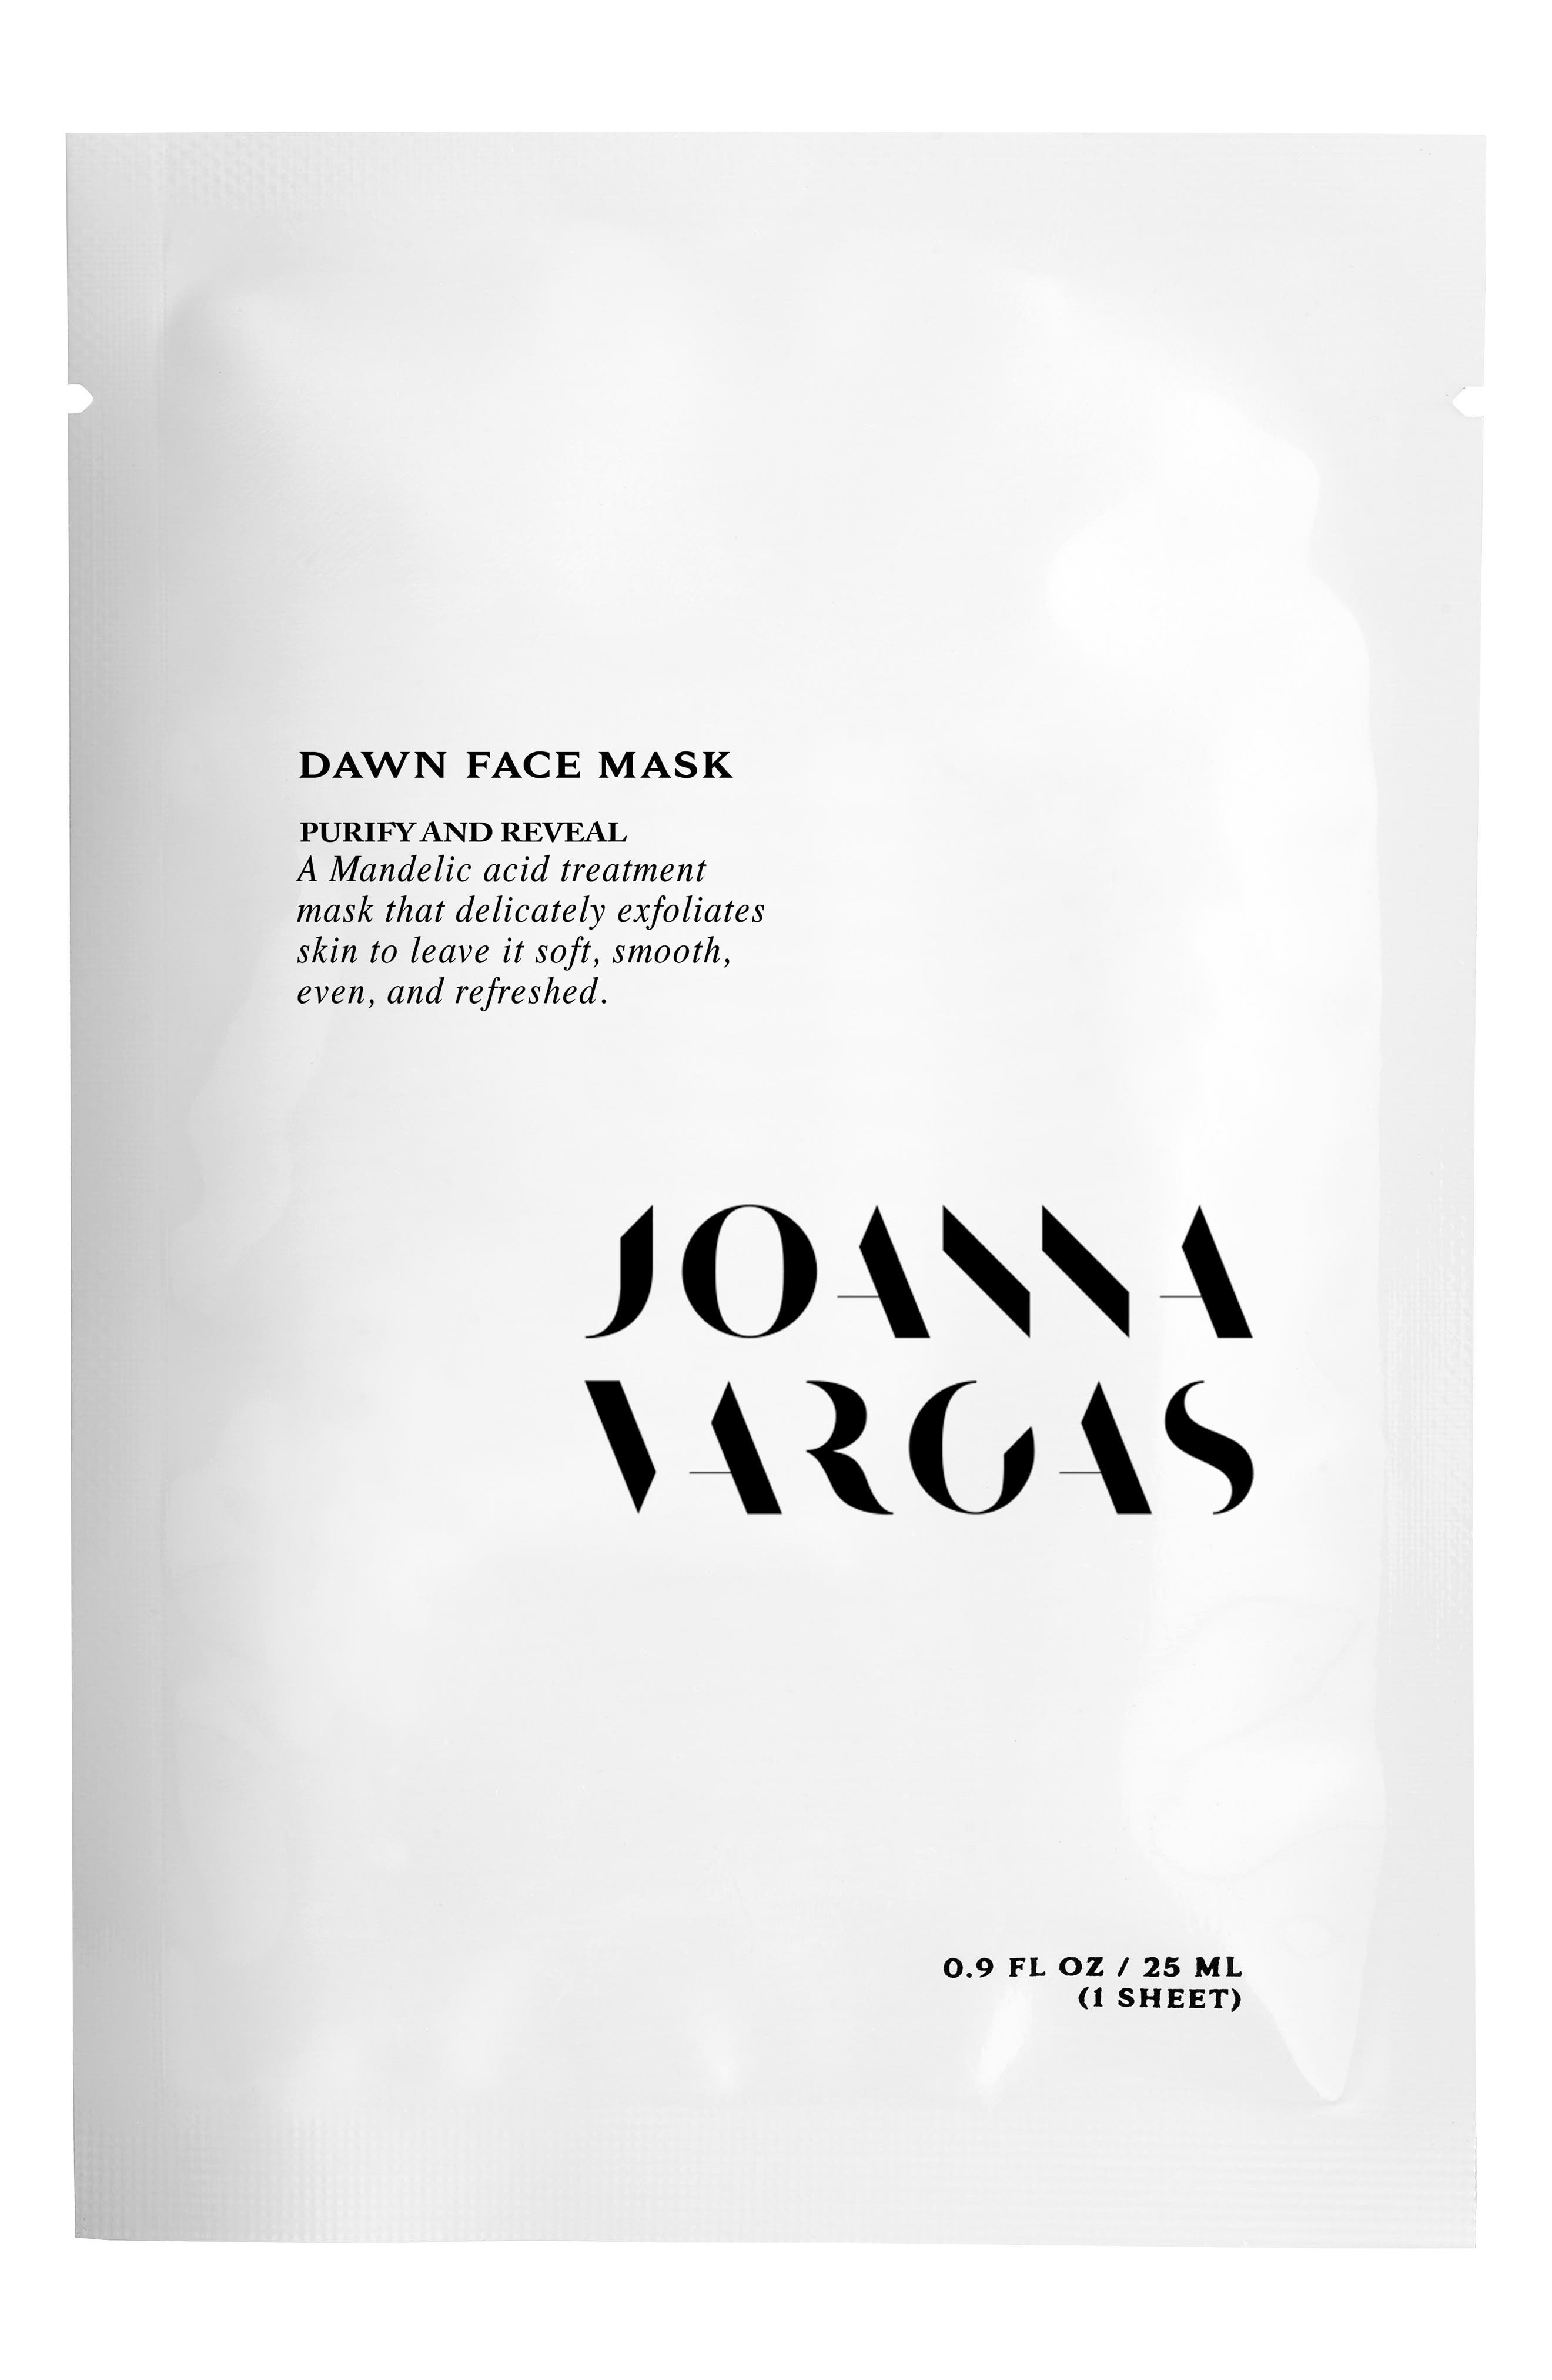 Alternate Image 1 Selected - Joanna Vargas Dawn Face Mask